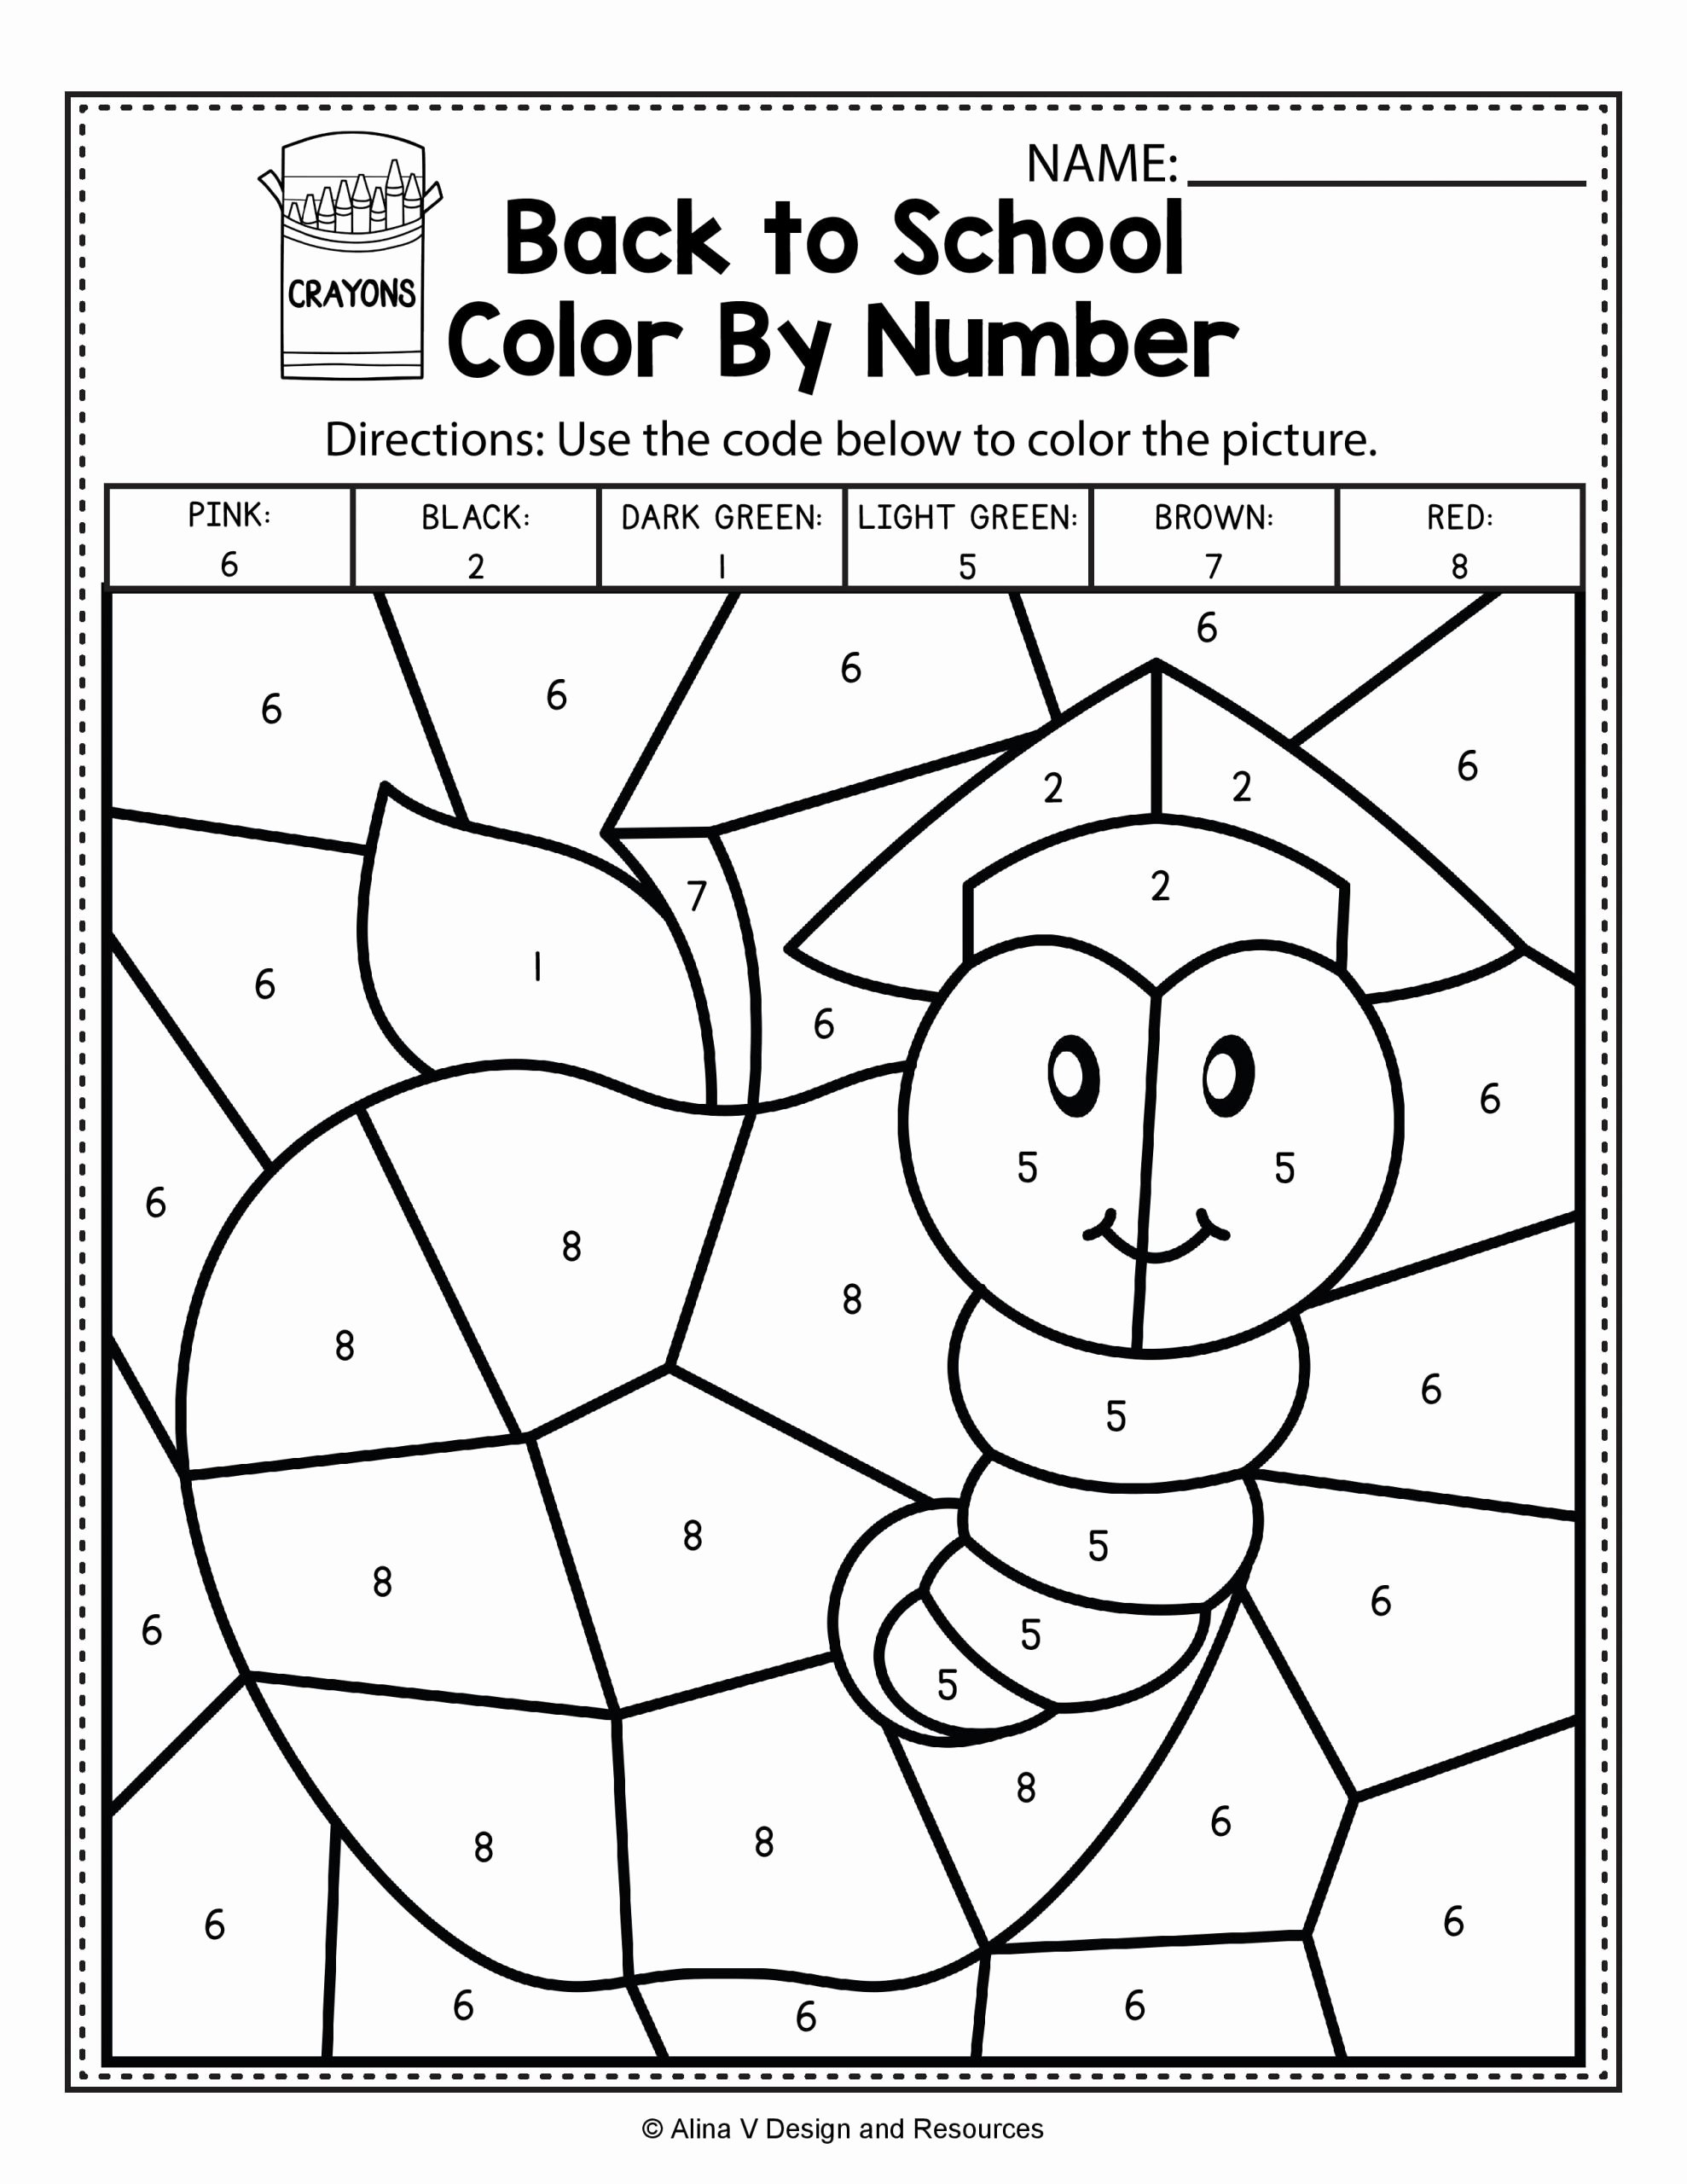 Easy Color by Number Worksheets Inspirational Coloring Sheet Back to School Color by Number Math